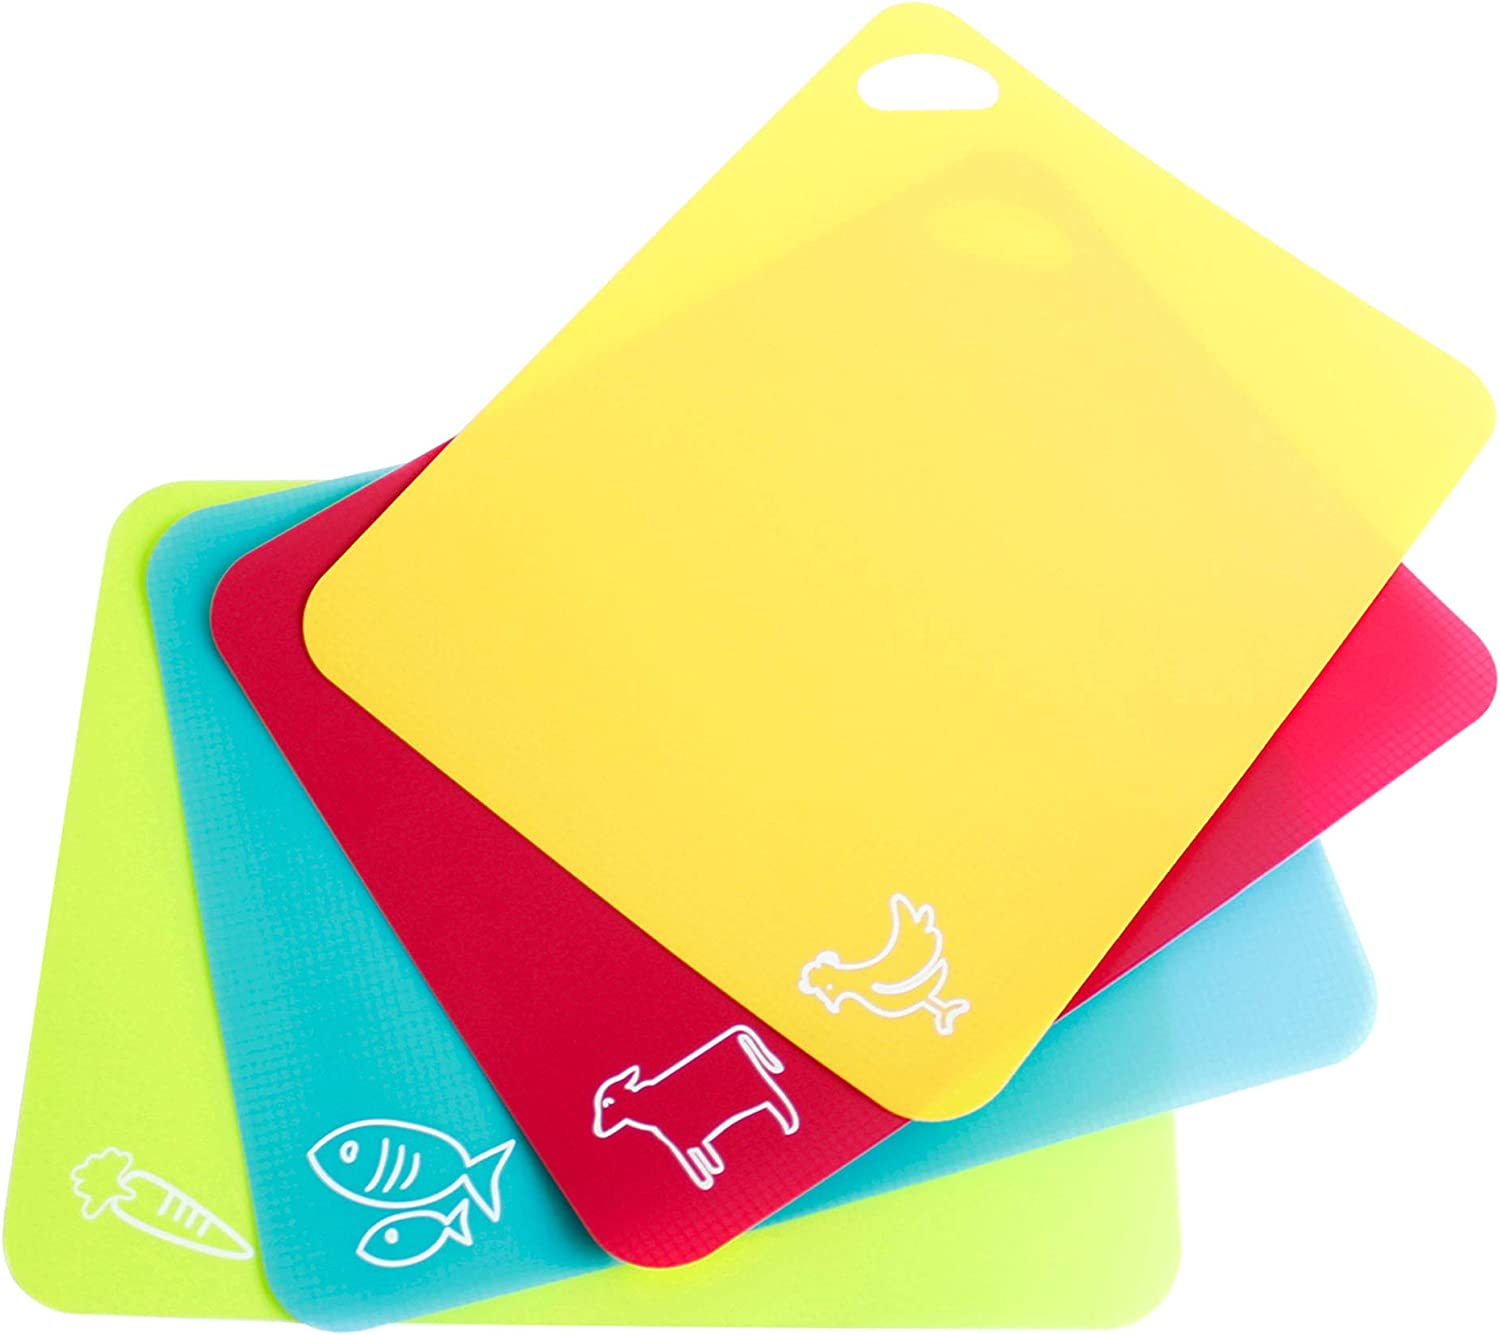 Neoflam 15'' 4pc Thick Flexible Coded Cutting Board Mats Set with Food Icons Slip Waffle Back Grip, BPA Free, Non-Porous, Dishwasher Safe for Kitchen Prep, One Size, Multicolor